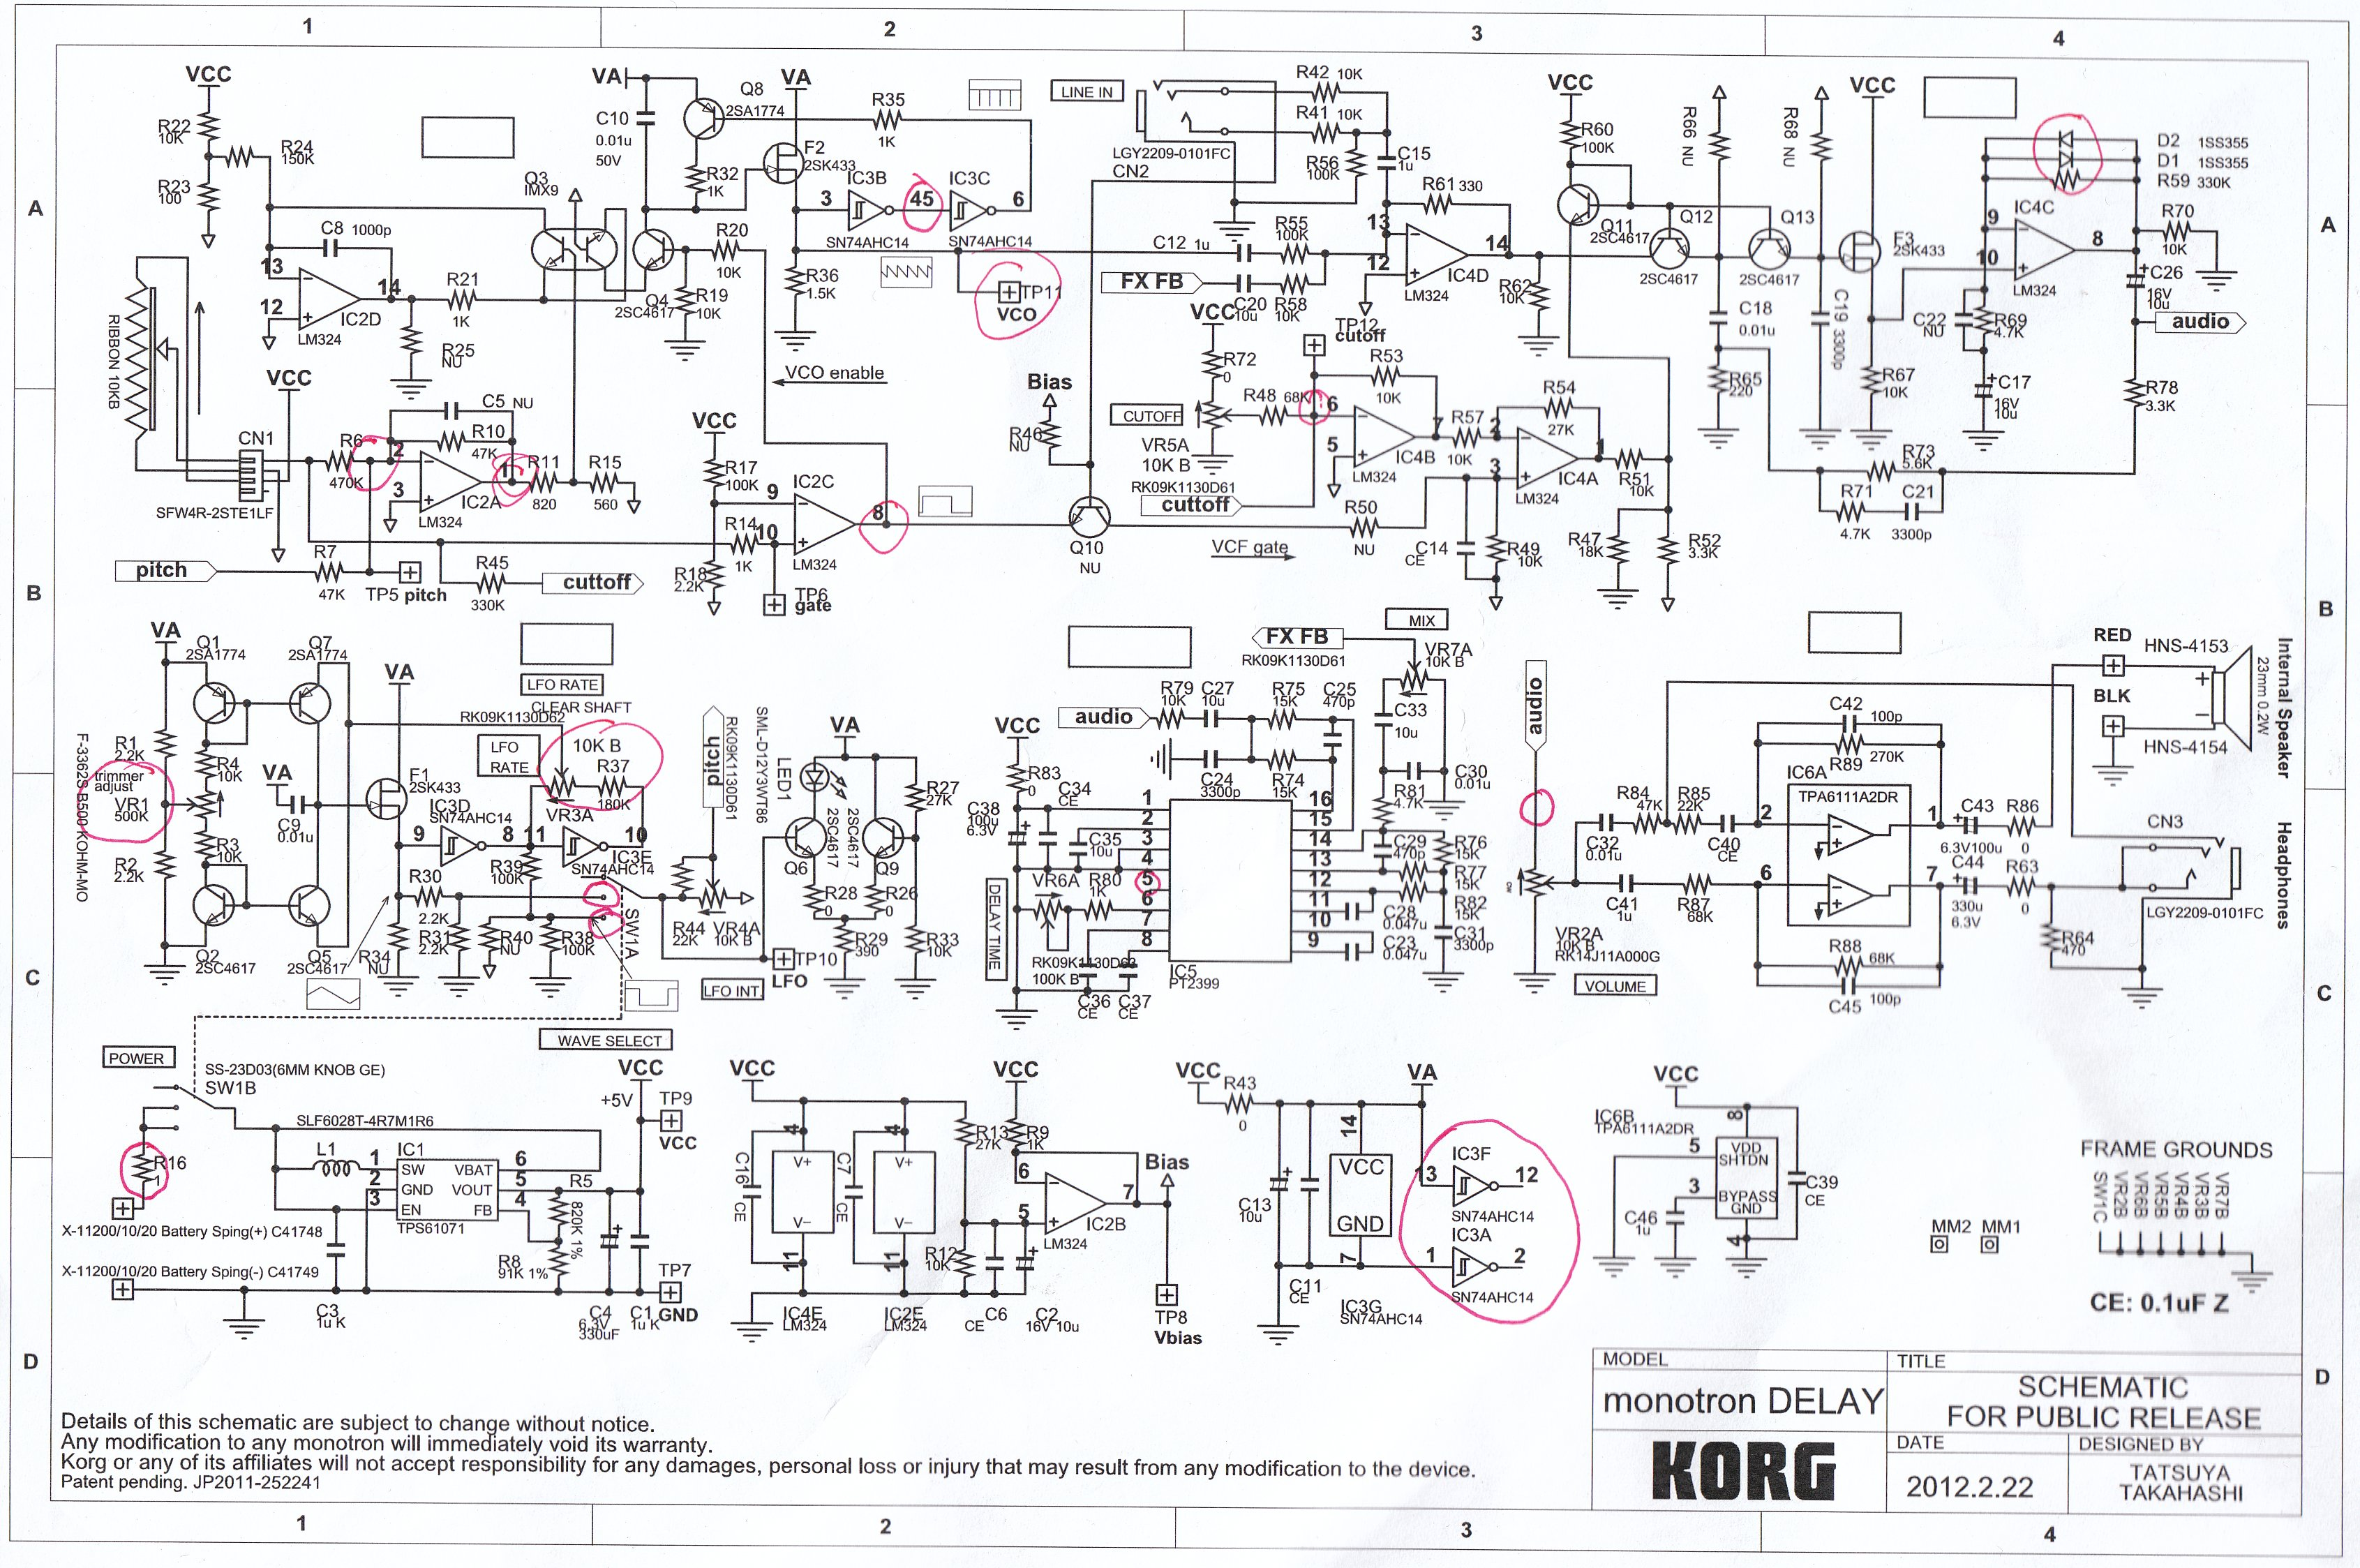 korg monotron delay 100 wet mod gearslutz pro audio community rh gearslutz com Wiring Diagram Symbols Schematic Circuit Diagram